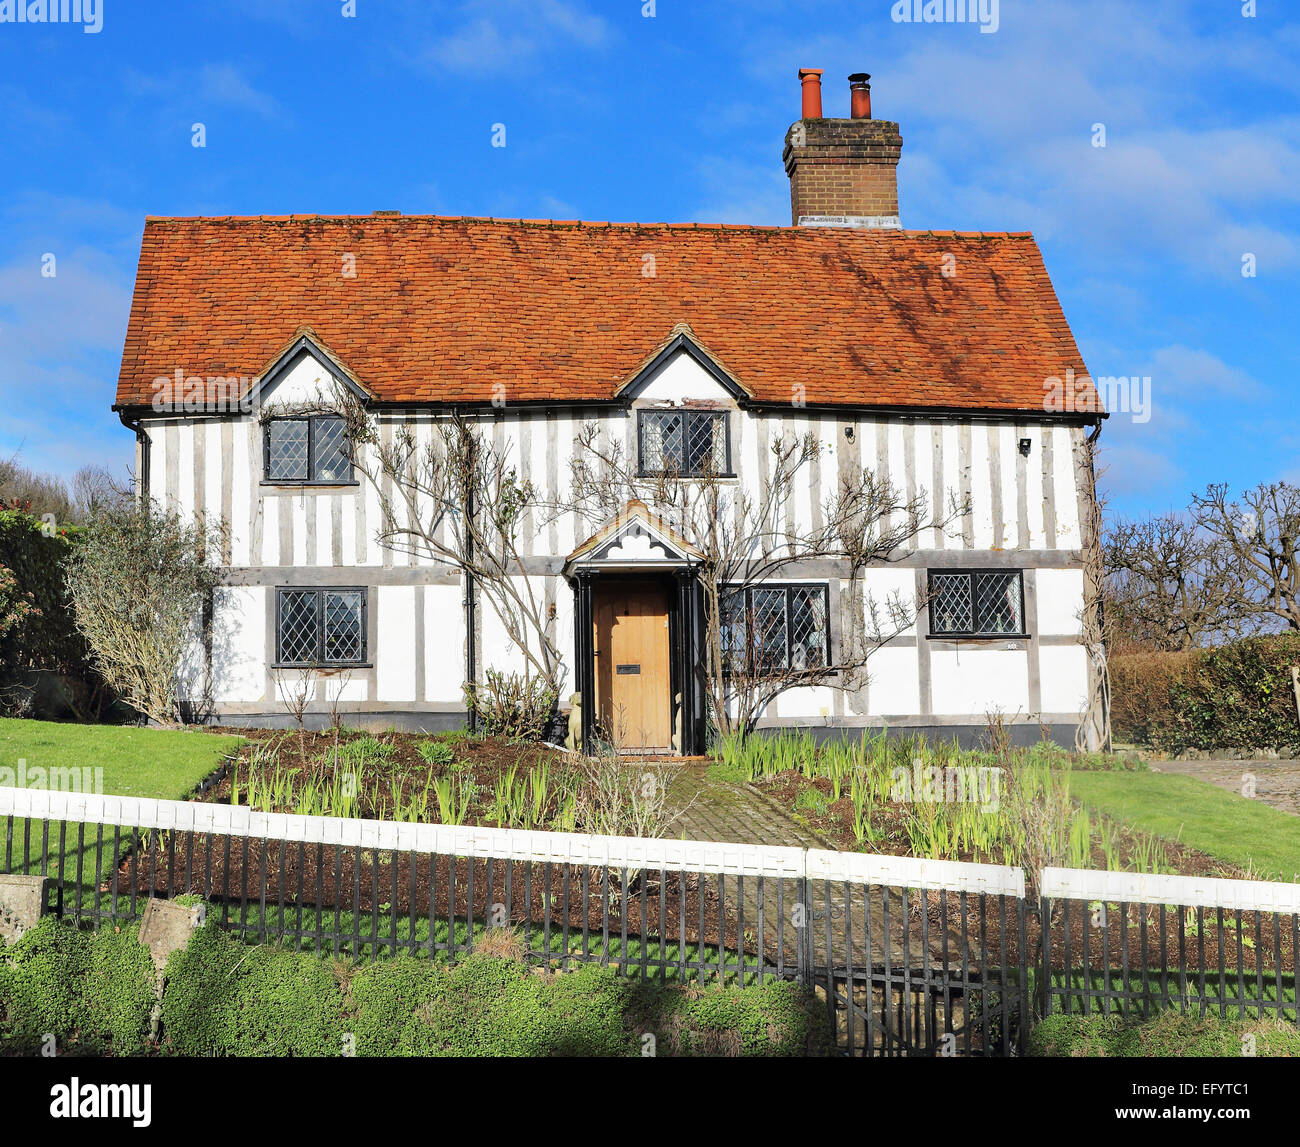 Traditional whitewashed Timber Framed English Village Cottage and garden - Stock Image